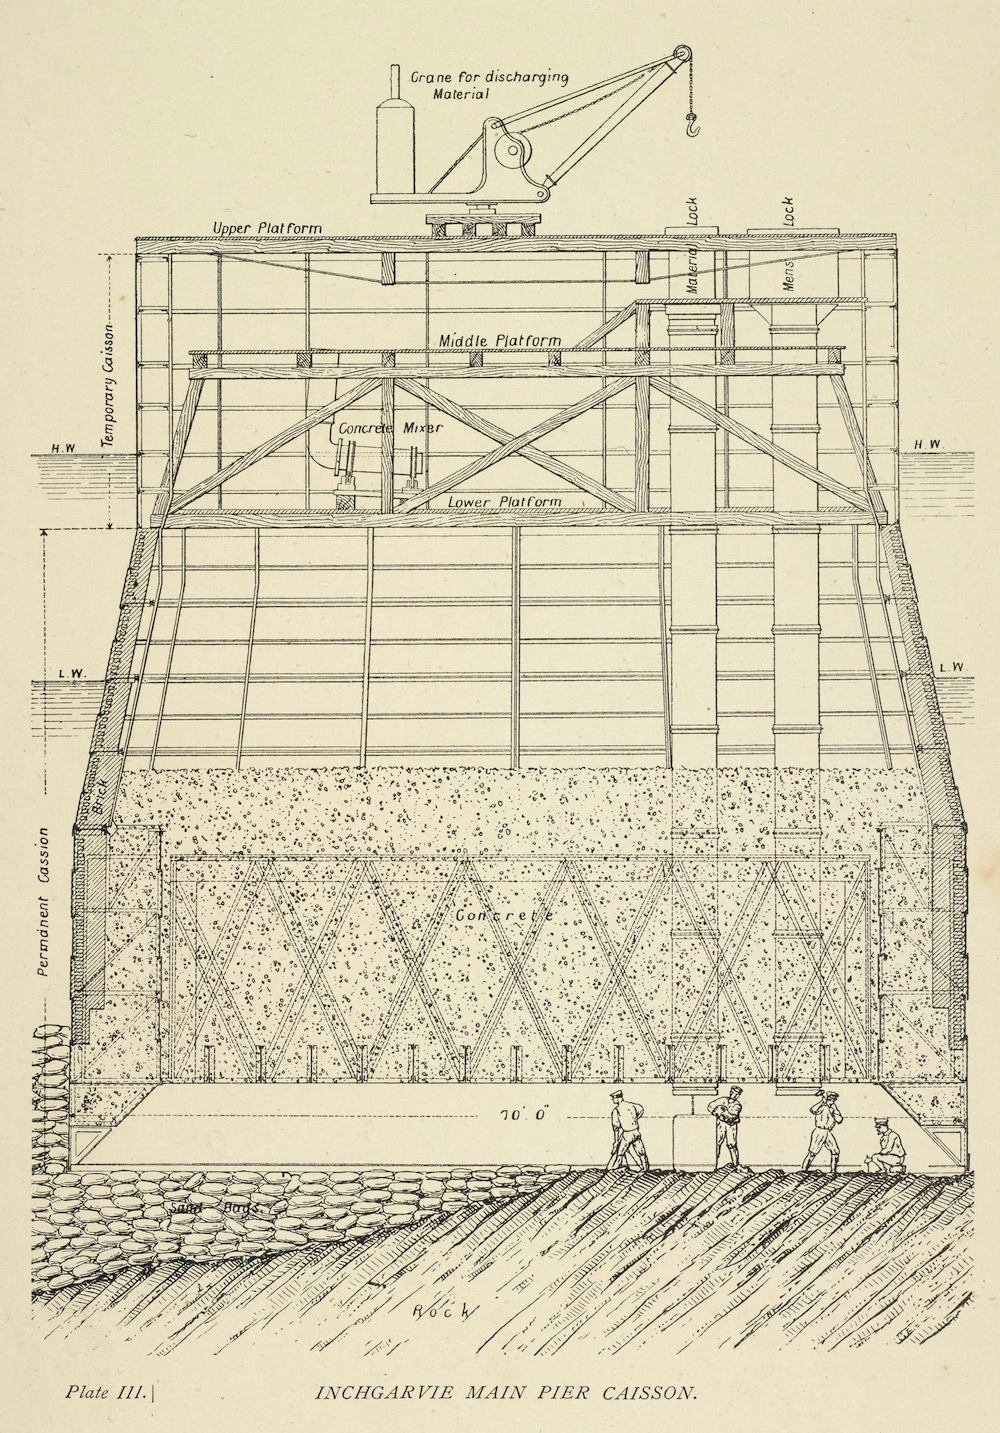 Public Domain Openglam Stair Anatomy Drawing Elements Parts Illustration Diagram Cross Section Illustrating A Caisson From Bridging The Firth Of Forth Benjamin Baker 1887